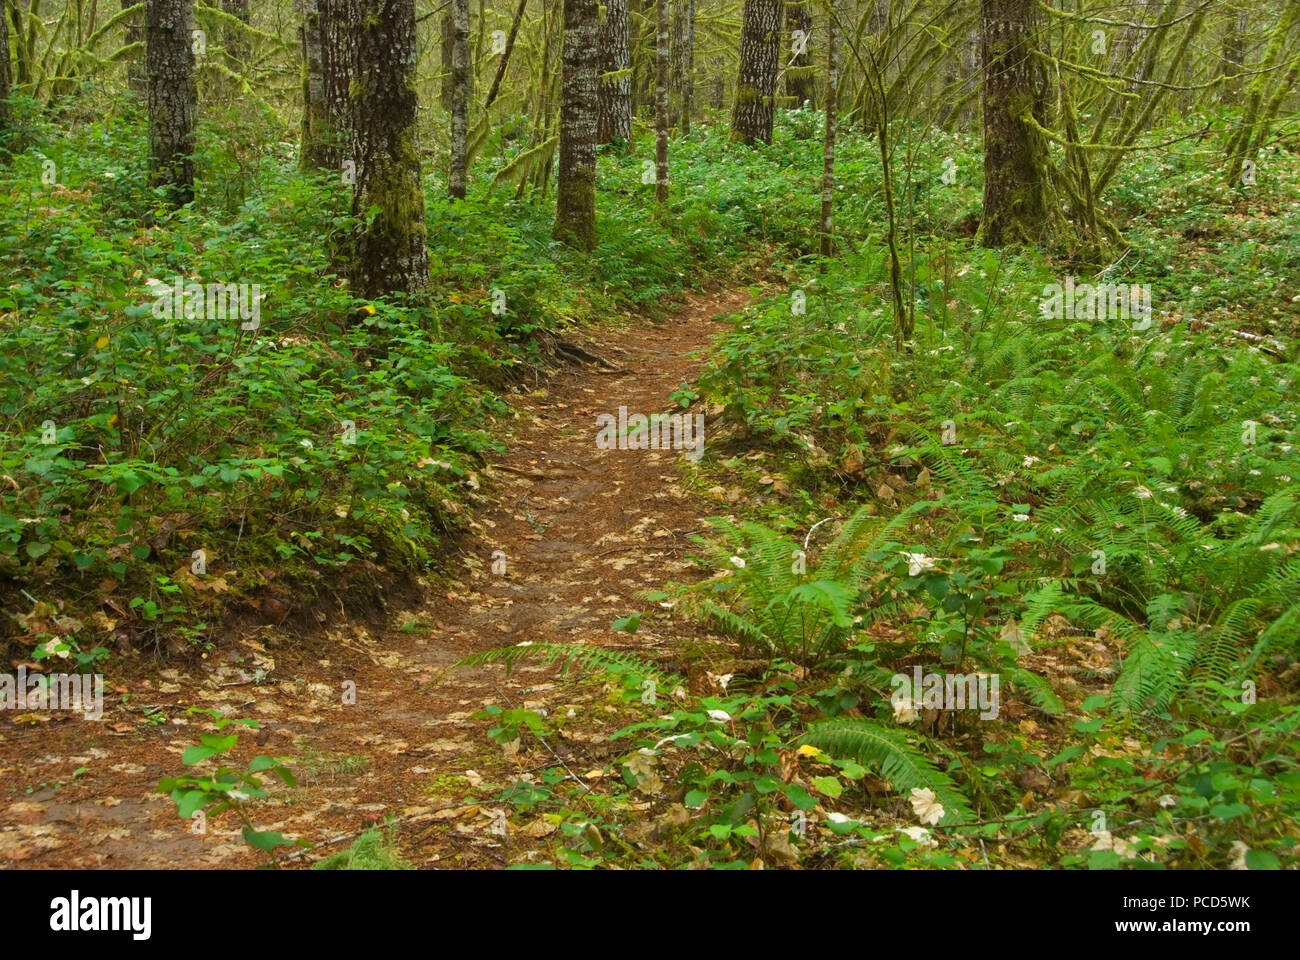 Gales Creek Trail, Tillamook State Forest, Oregon - Stock Image